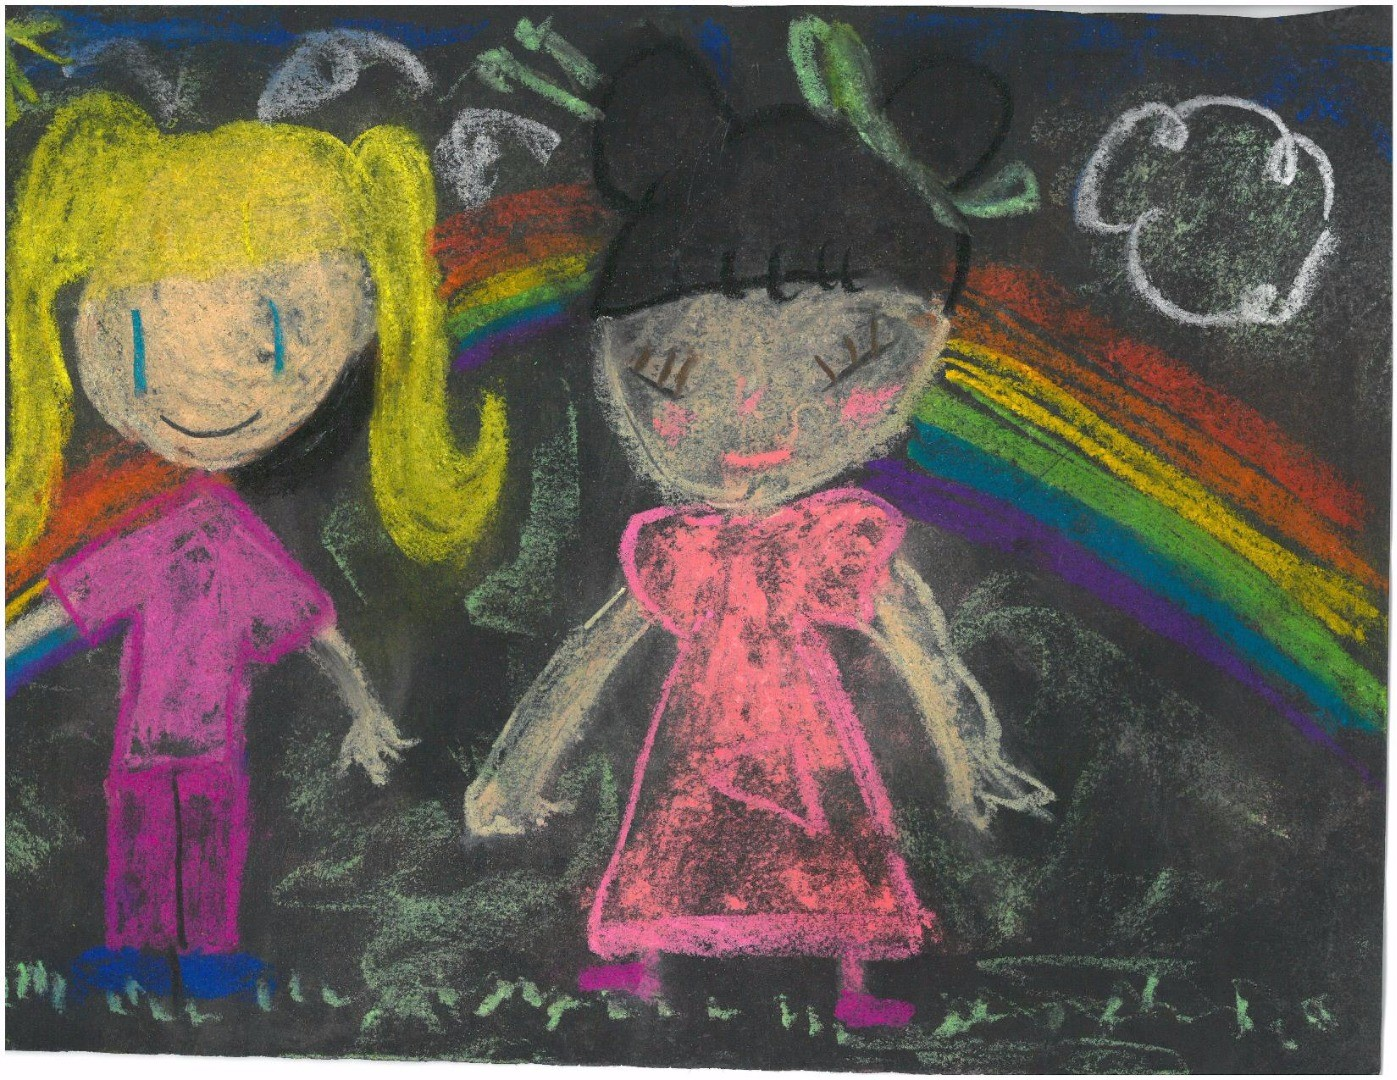 2017 Celebrate Australia Primary School Art Competition Highly Commended Section Two: Australia and Japan Unite by Talyn Williams